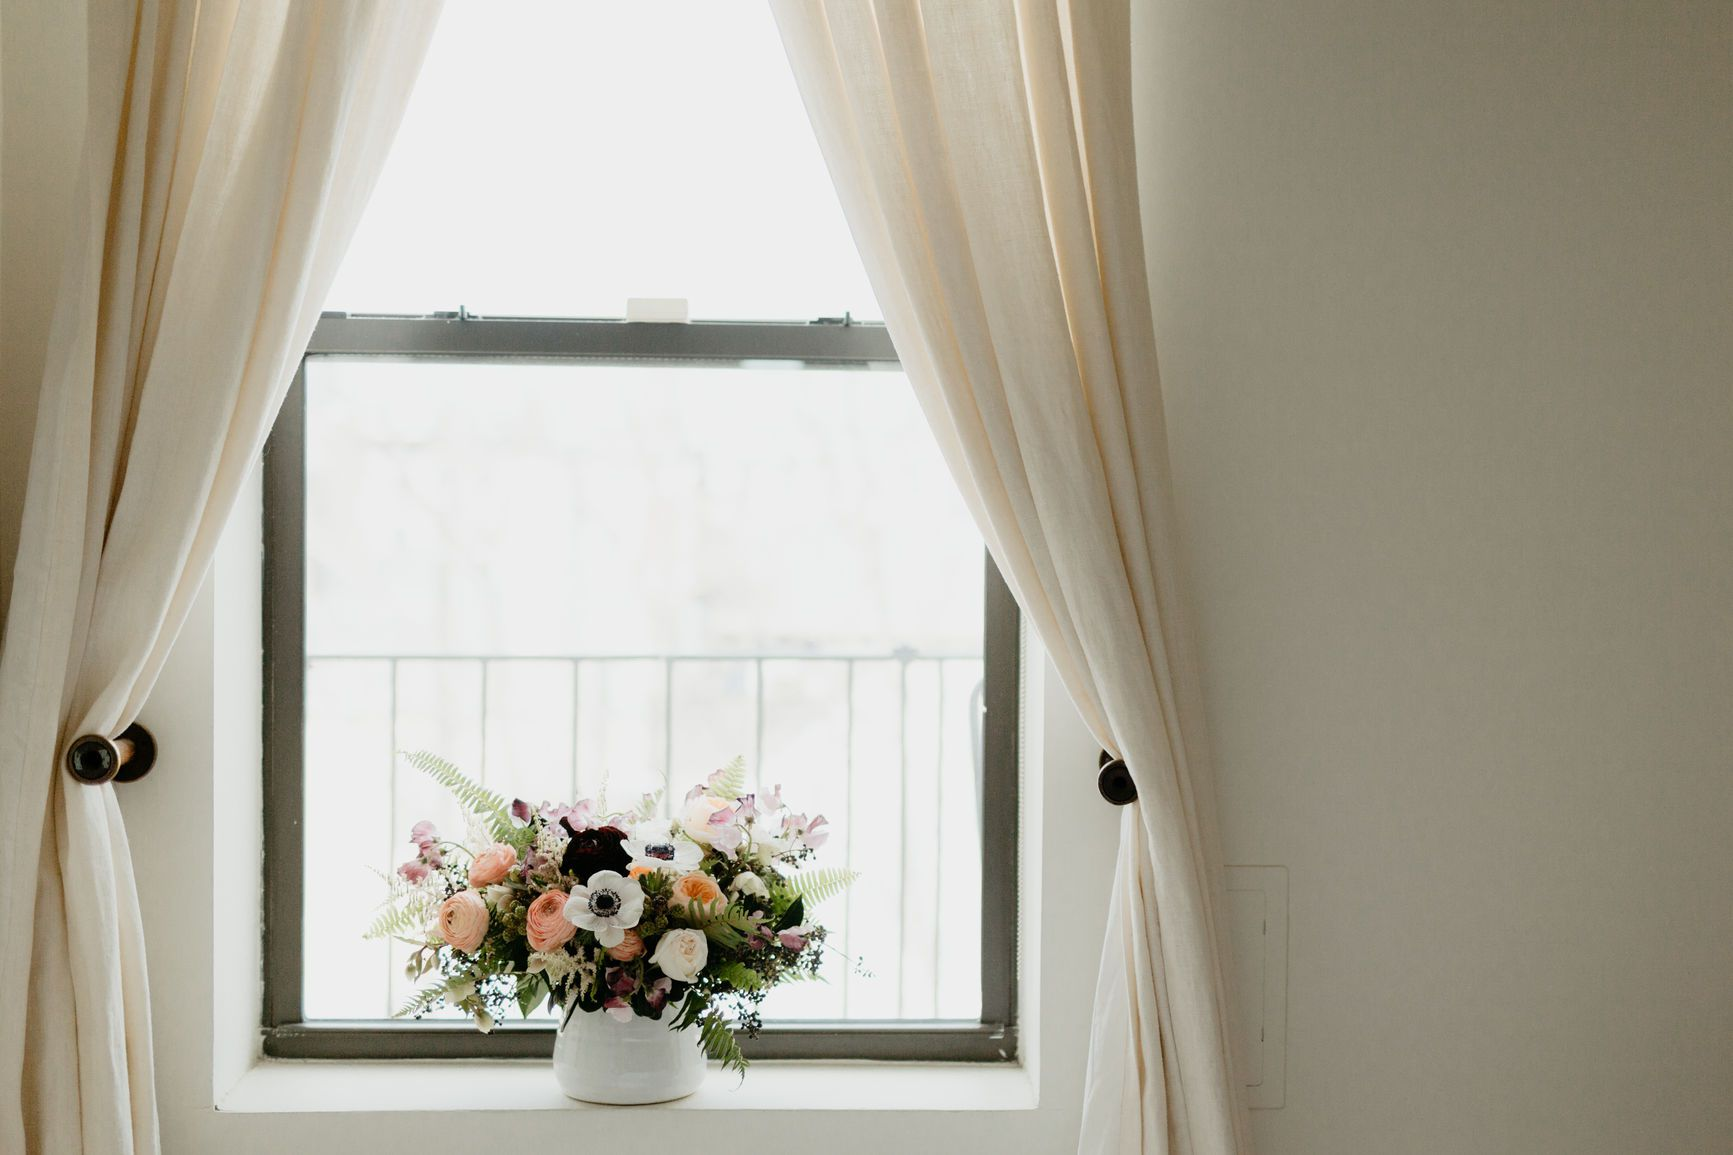 window treatment with curtains and flowers